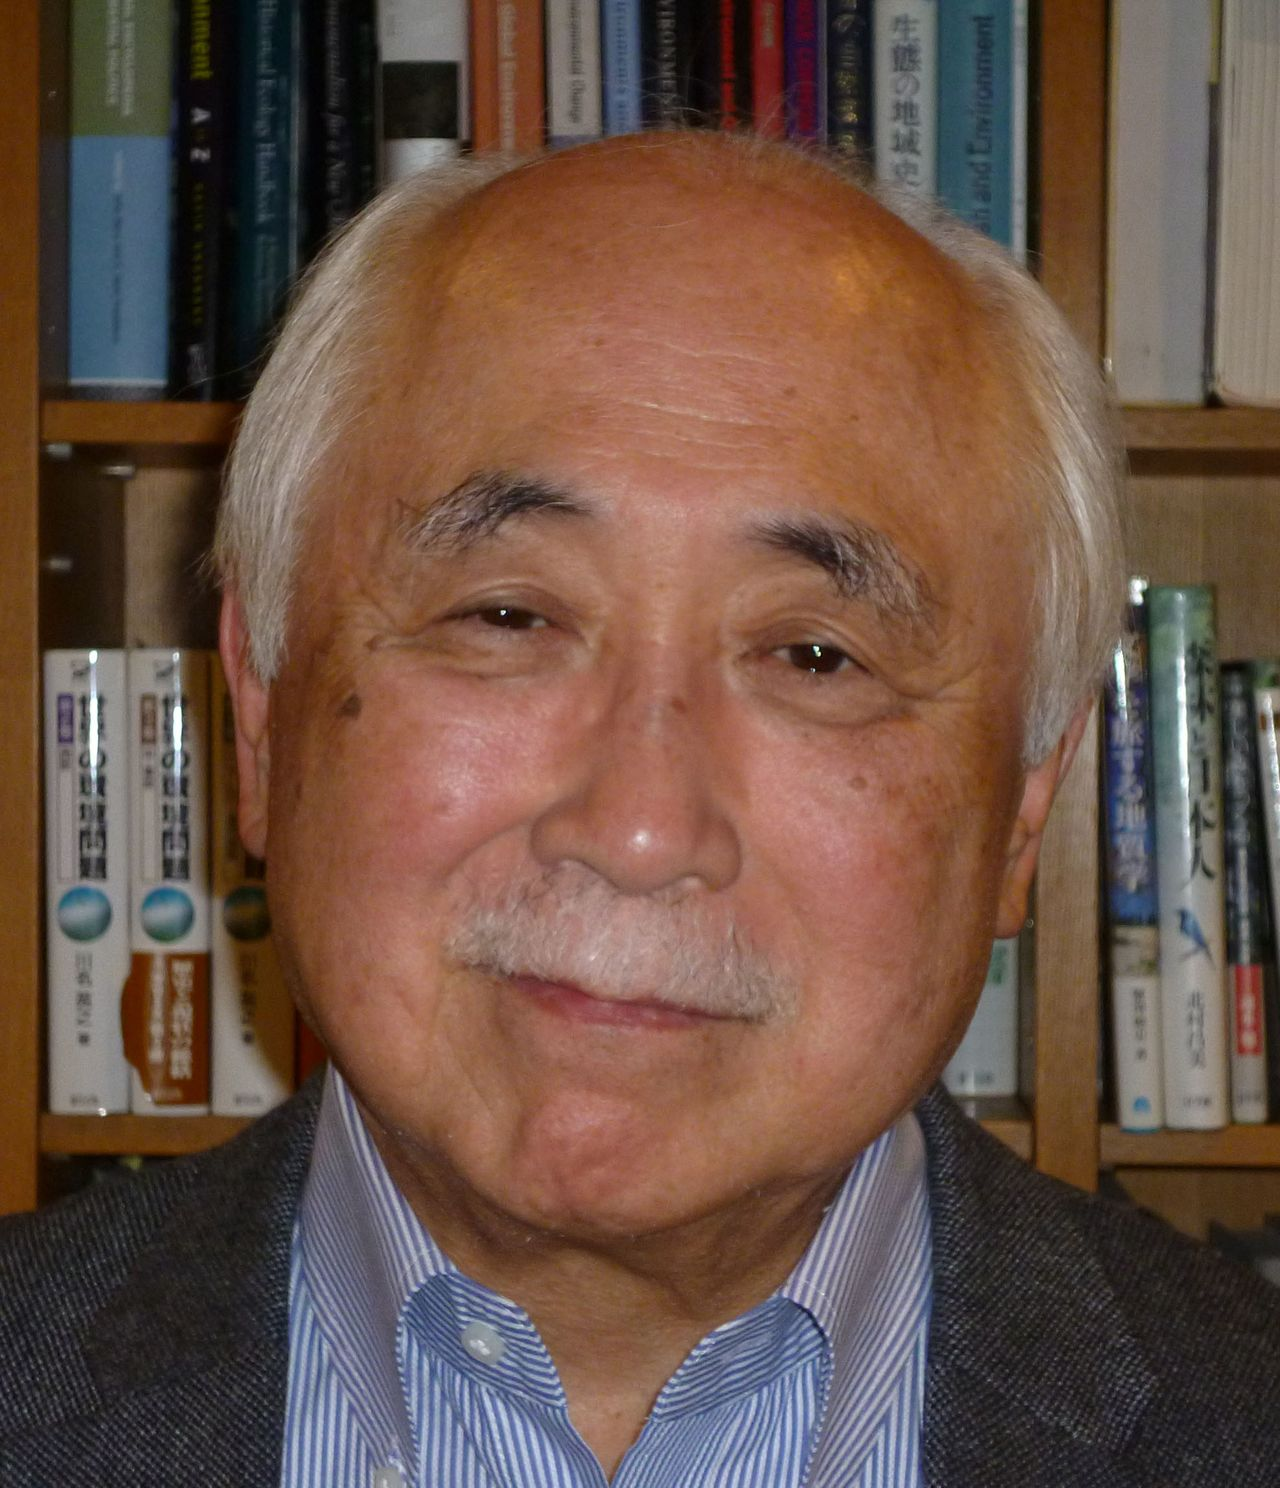 "Ishi HiroyukiEnvironmental journalist and scientist. After a stint on the Asahi Shimbun editorial board, served as a senior consultant to the United Nations Environment Program in Nairobi and Bangkok. Other positions include professorships at the University of Tokyo and Hokkaidō University and Japanese ambassador to Zambia. His works include Chikyū kankyō hōkoku (Global Environmental Report) and Watashi no chikyū henreki—Kankyō hakai no genba o motomete (My World Travels in Search of Environmental Destruction). Author of the Nippon.com series ""Remarkable Recovery: The Modern History of Japan's Environment."""